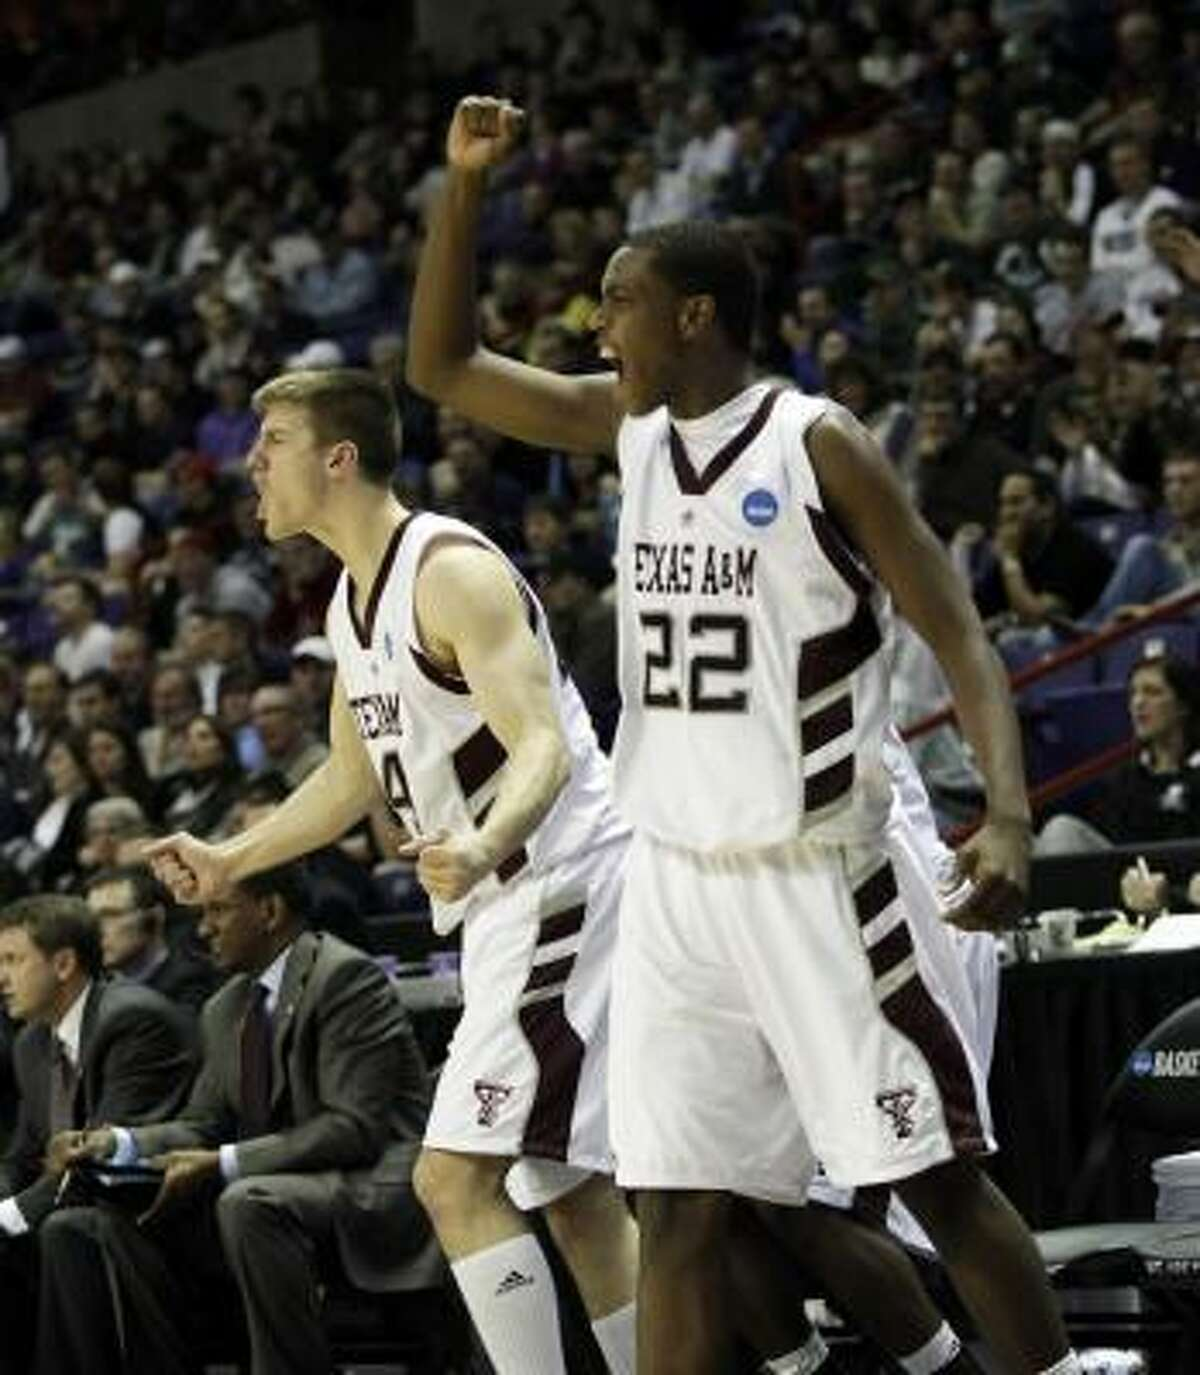 Texas A&M's Khris Middleton, right, and Nathan Walkup cheer from the bench late in the second half.